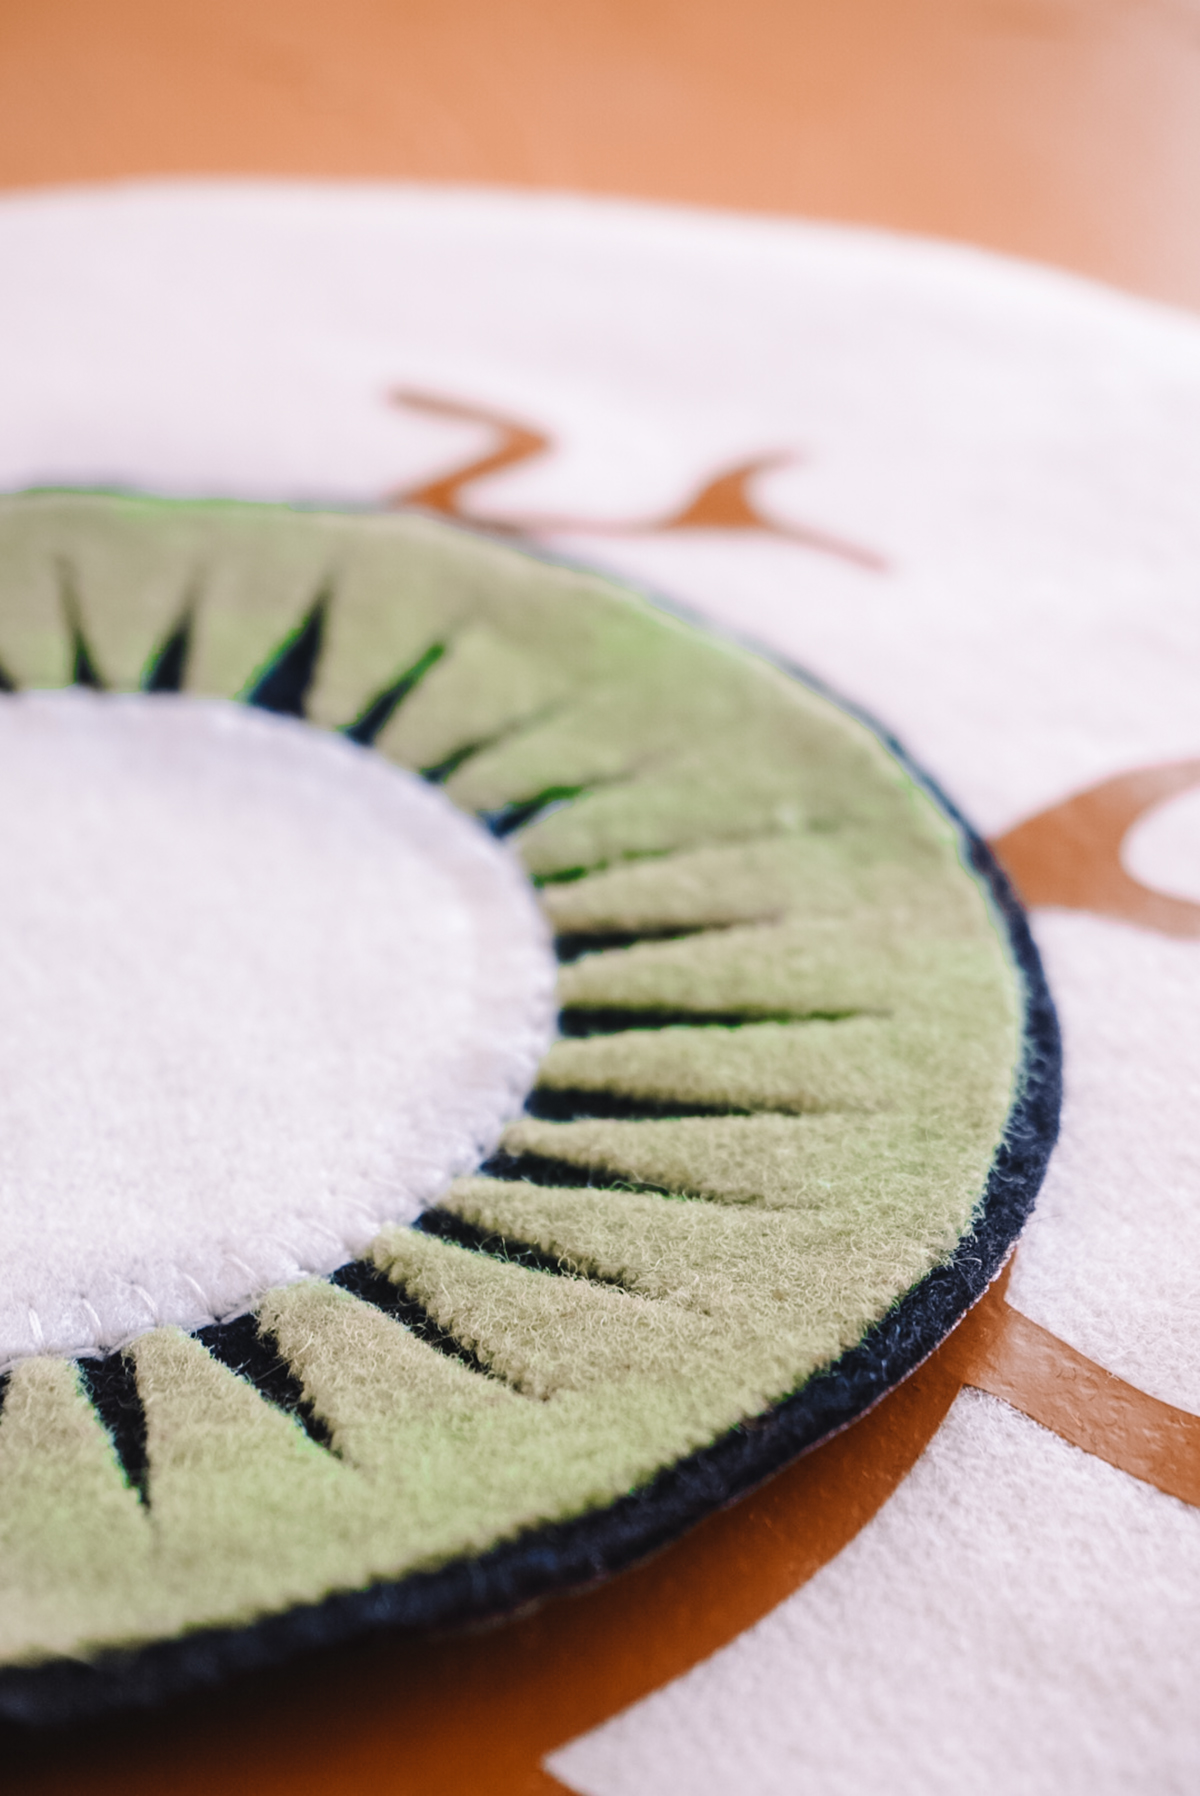 cut appliqué with Silhouette Cameo